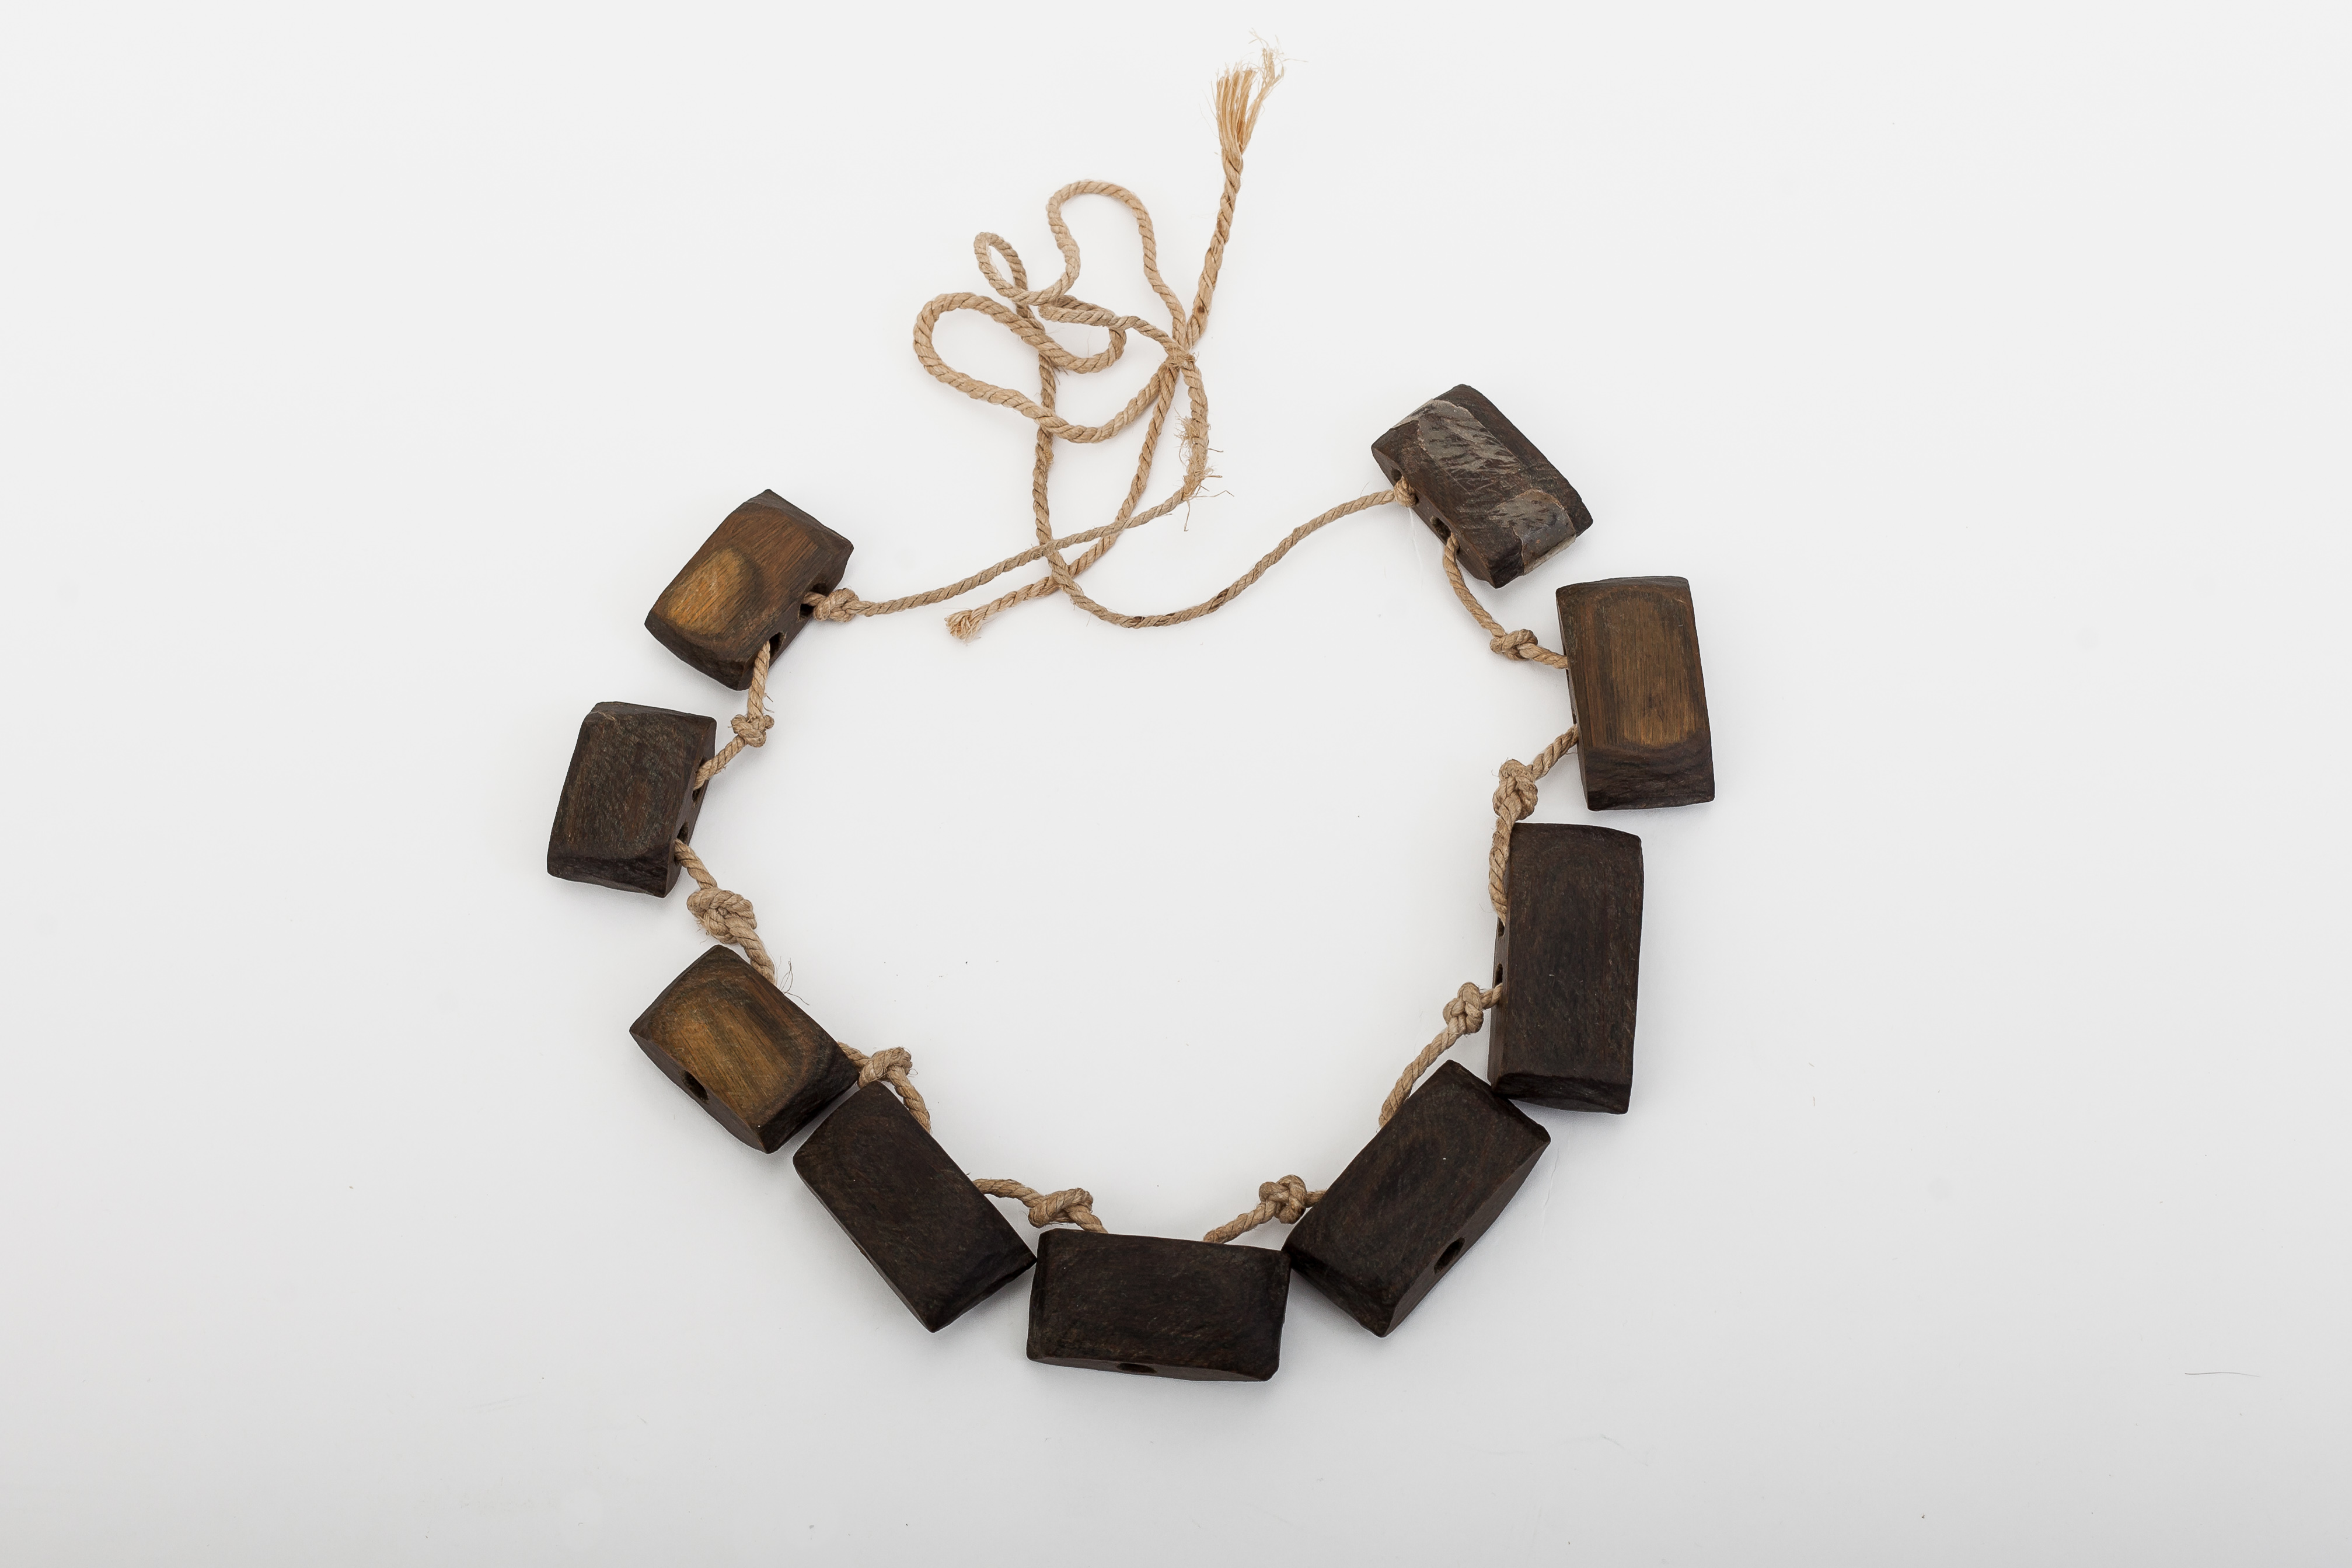 Little whistle necklaces worn by young men. They blow them.